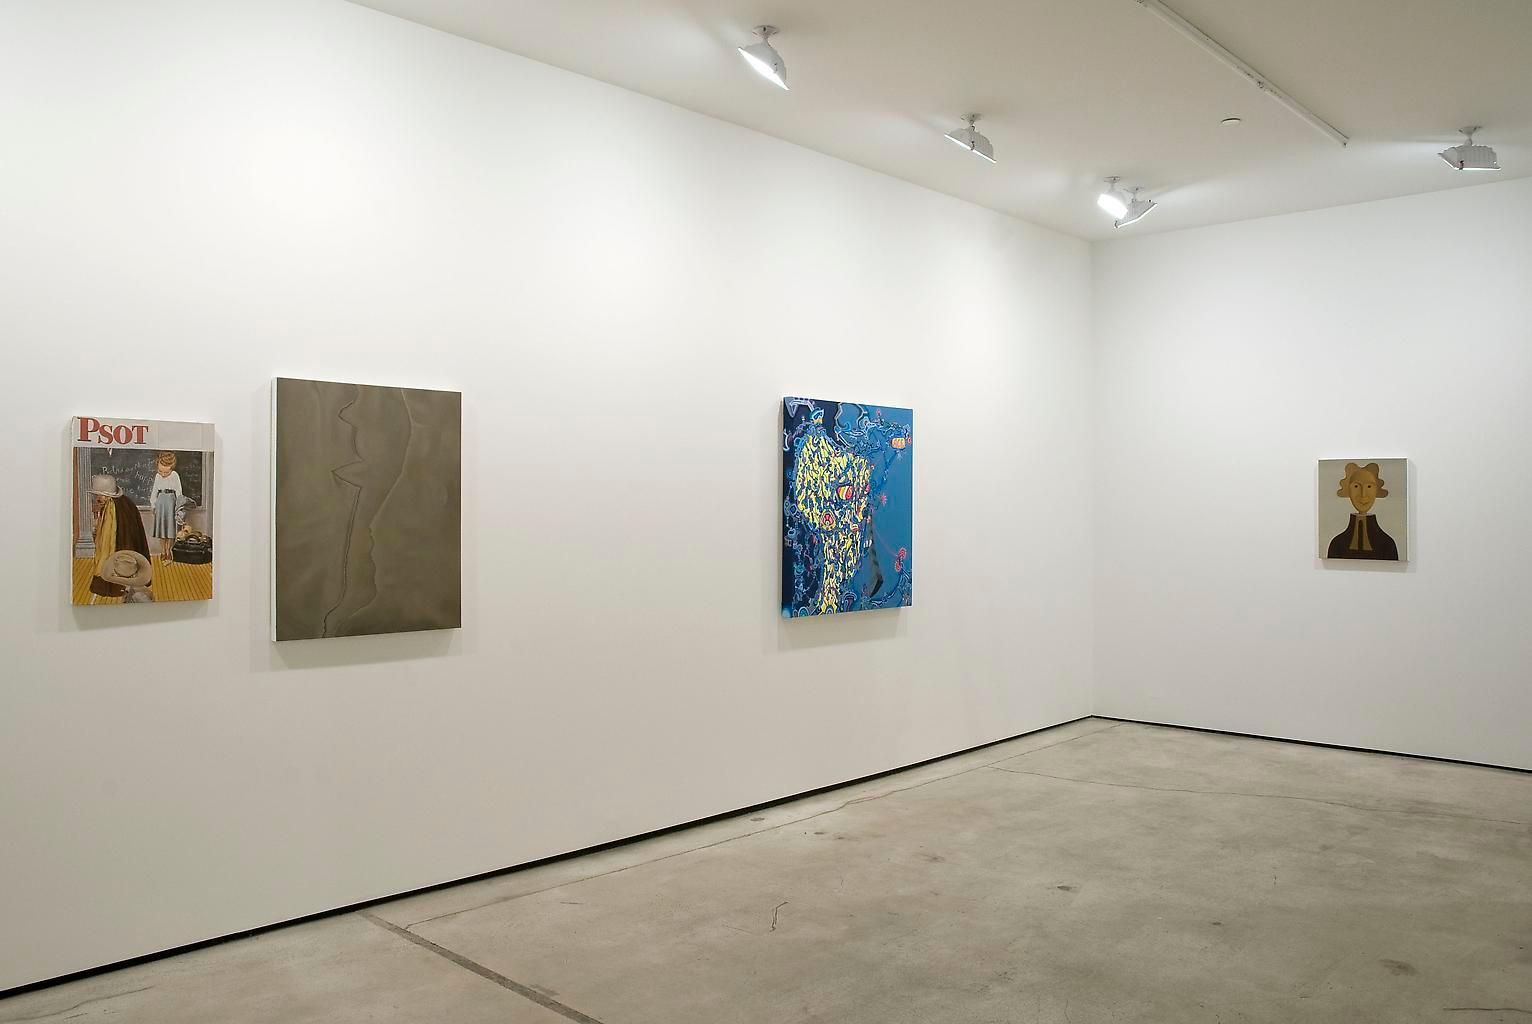 Installation view, Private Future, Marc Jancou, New York, December 9, 2010 - January 29, 2011